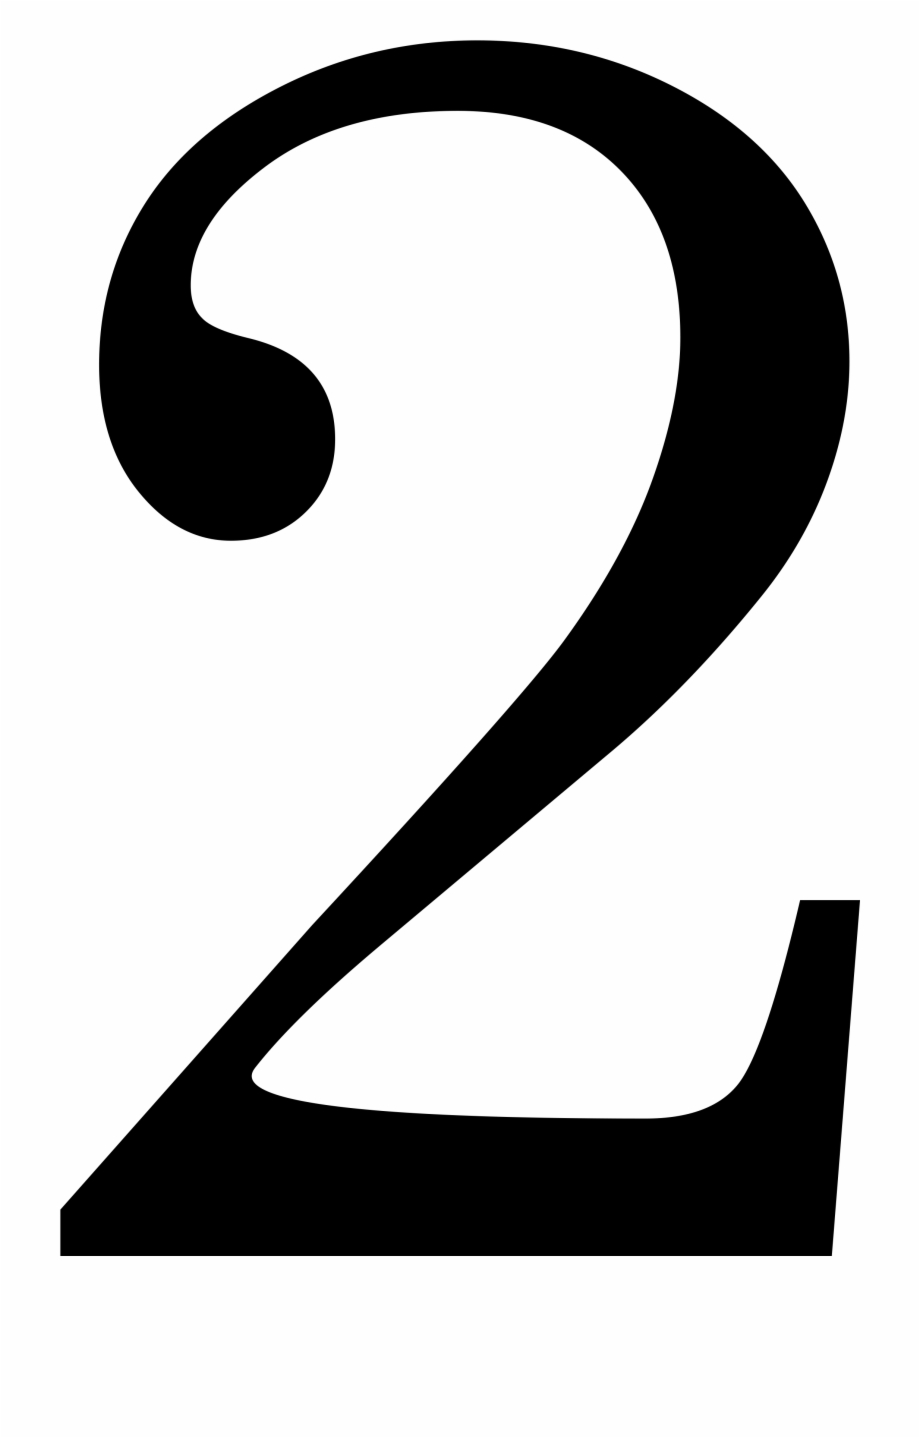 Numero 2 clipart clip art transparent download Number 2 Png - Number 2 With No Background Free PNG Images ... clip art transparent download